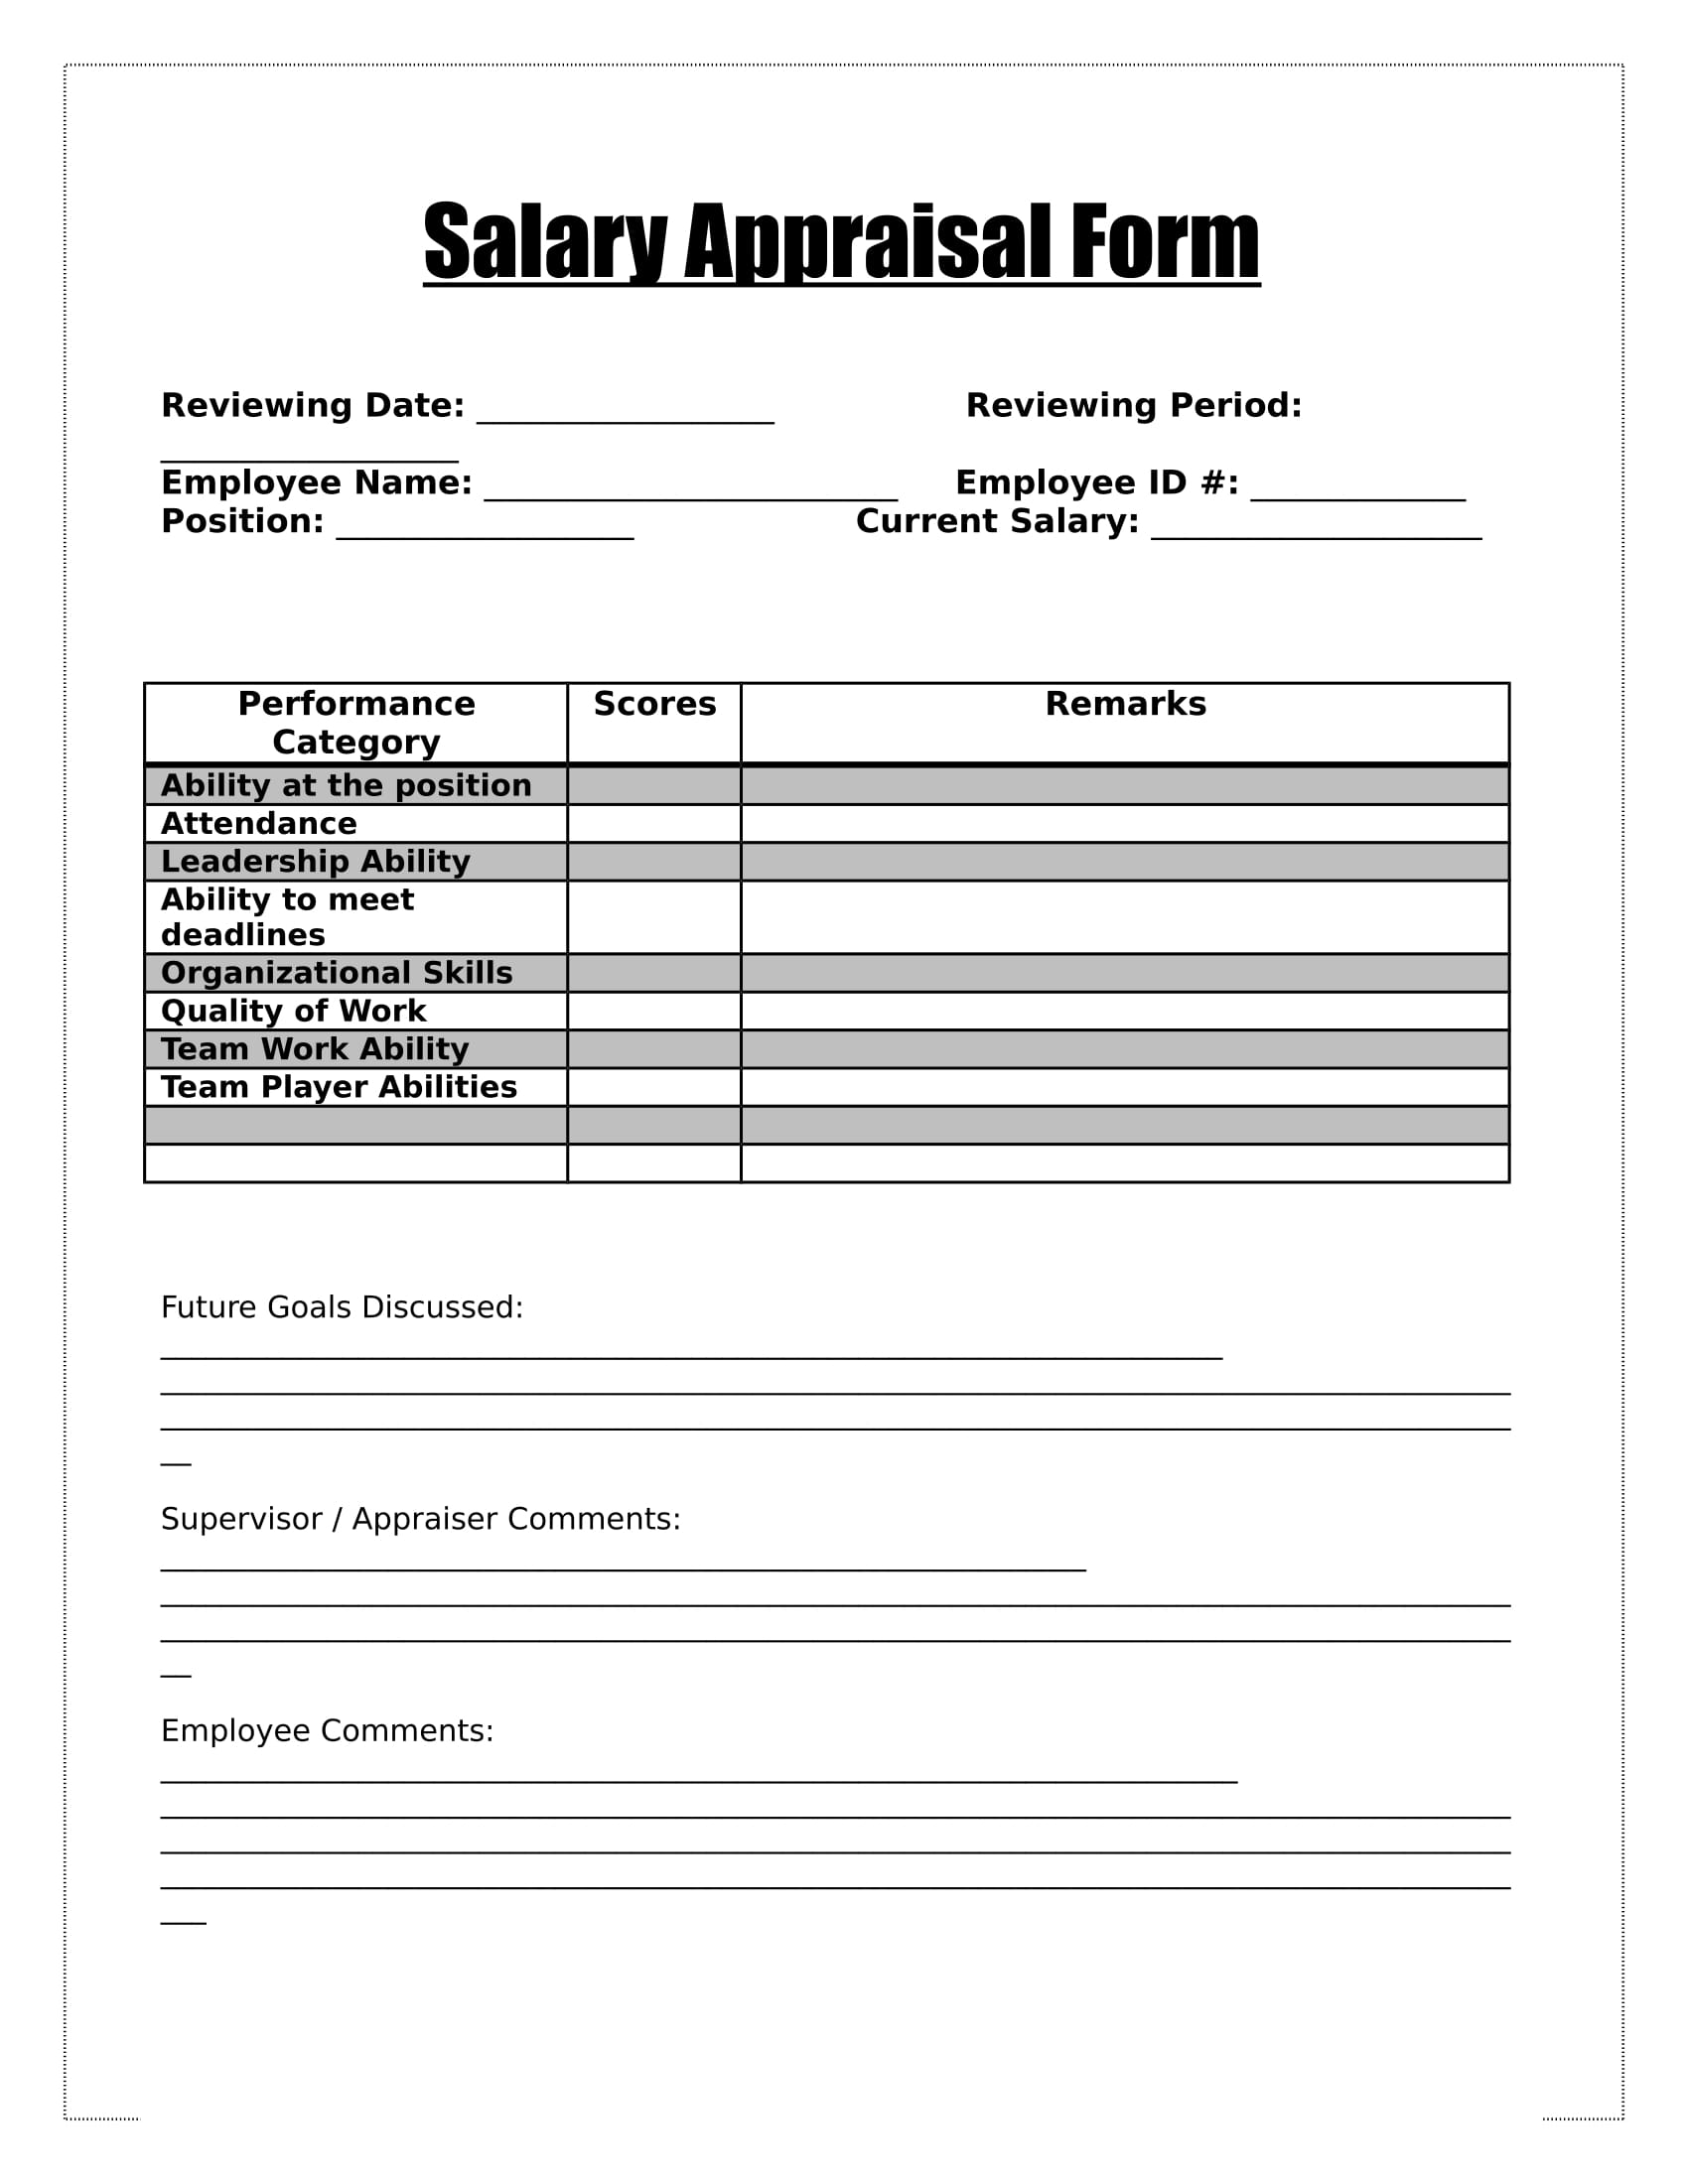 simple salary appraisal form 1